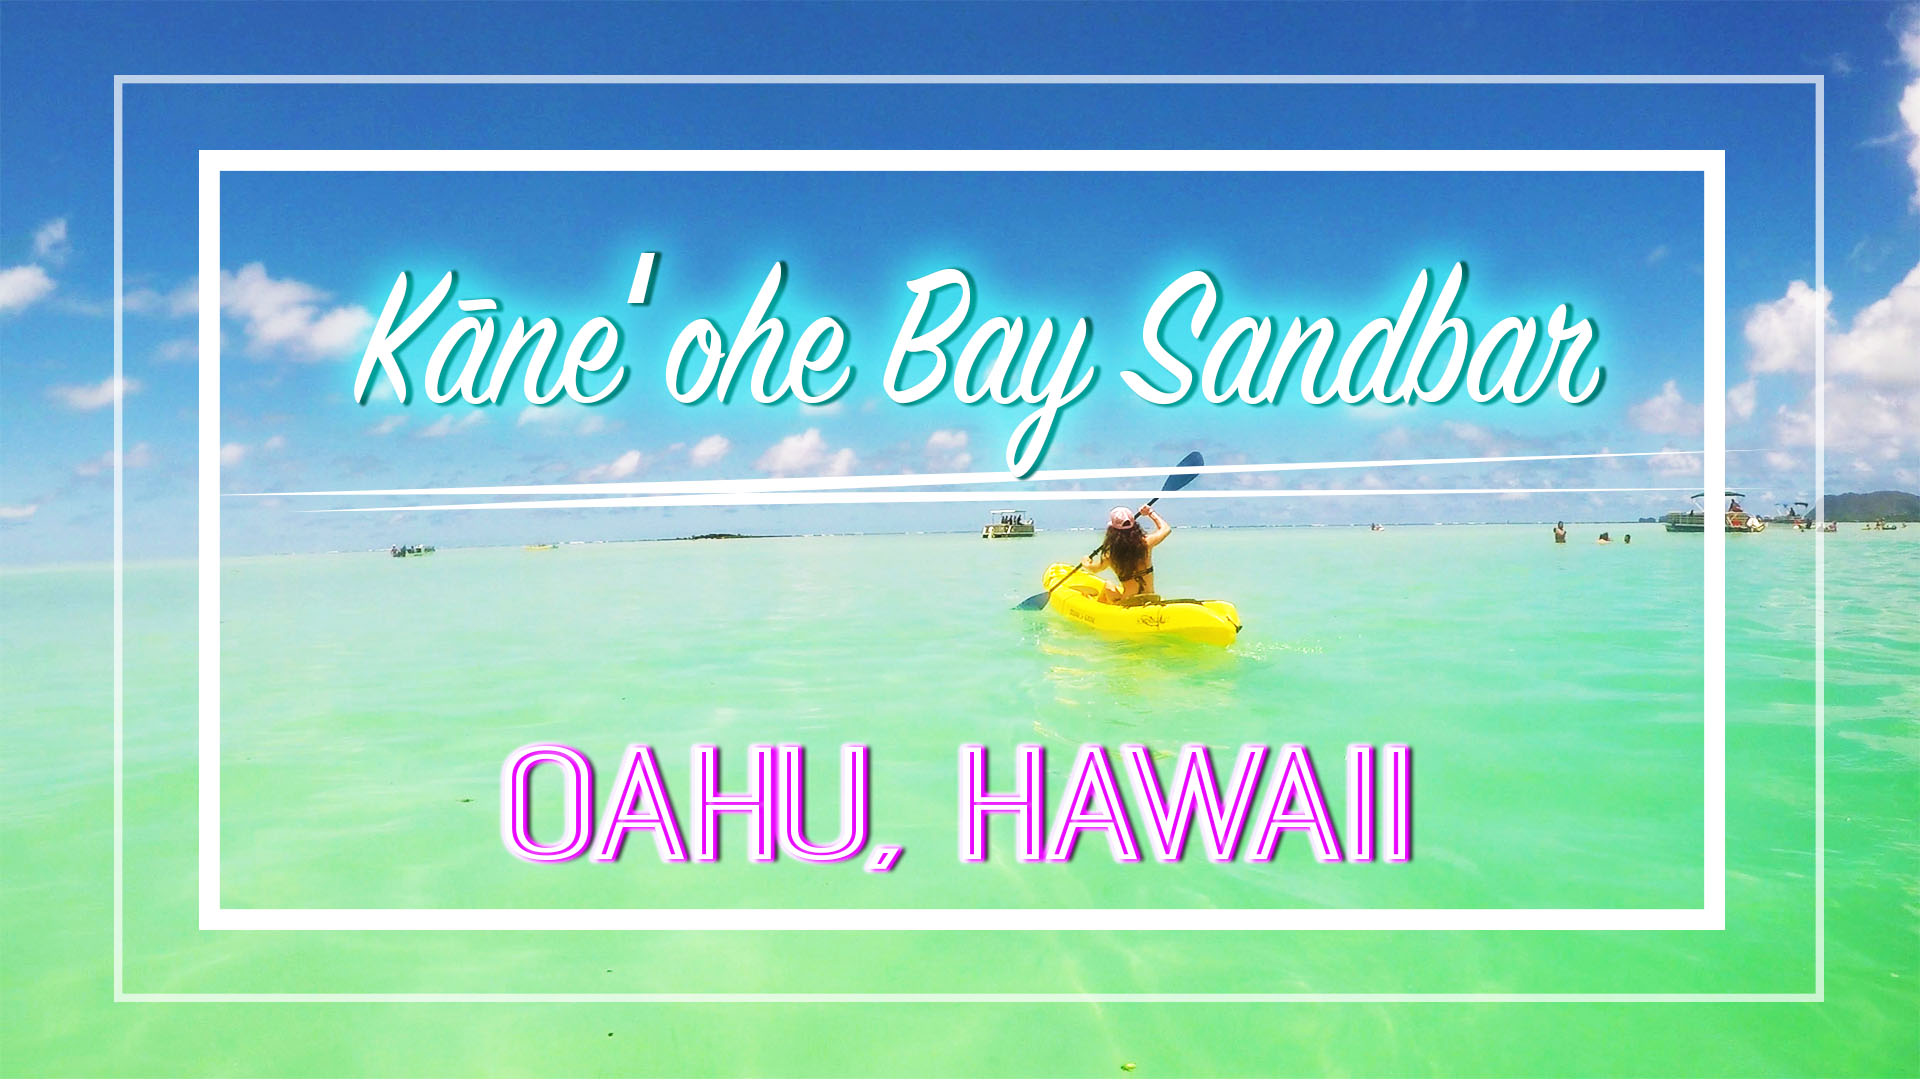 Kayaking to Kaneohe Bay Sandbar — A Million People & Places